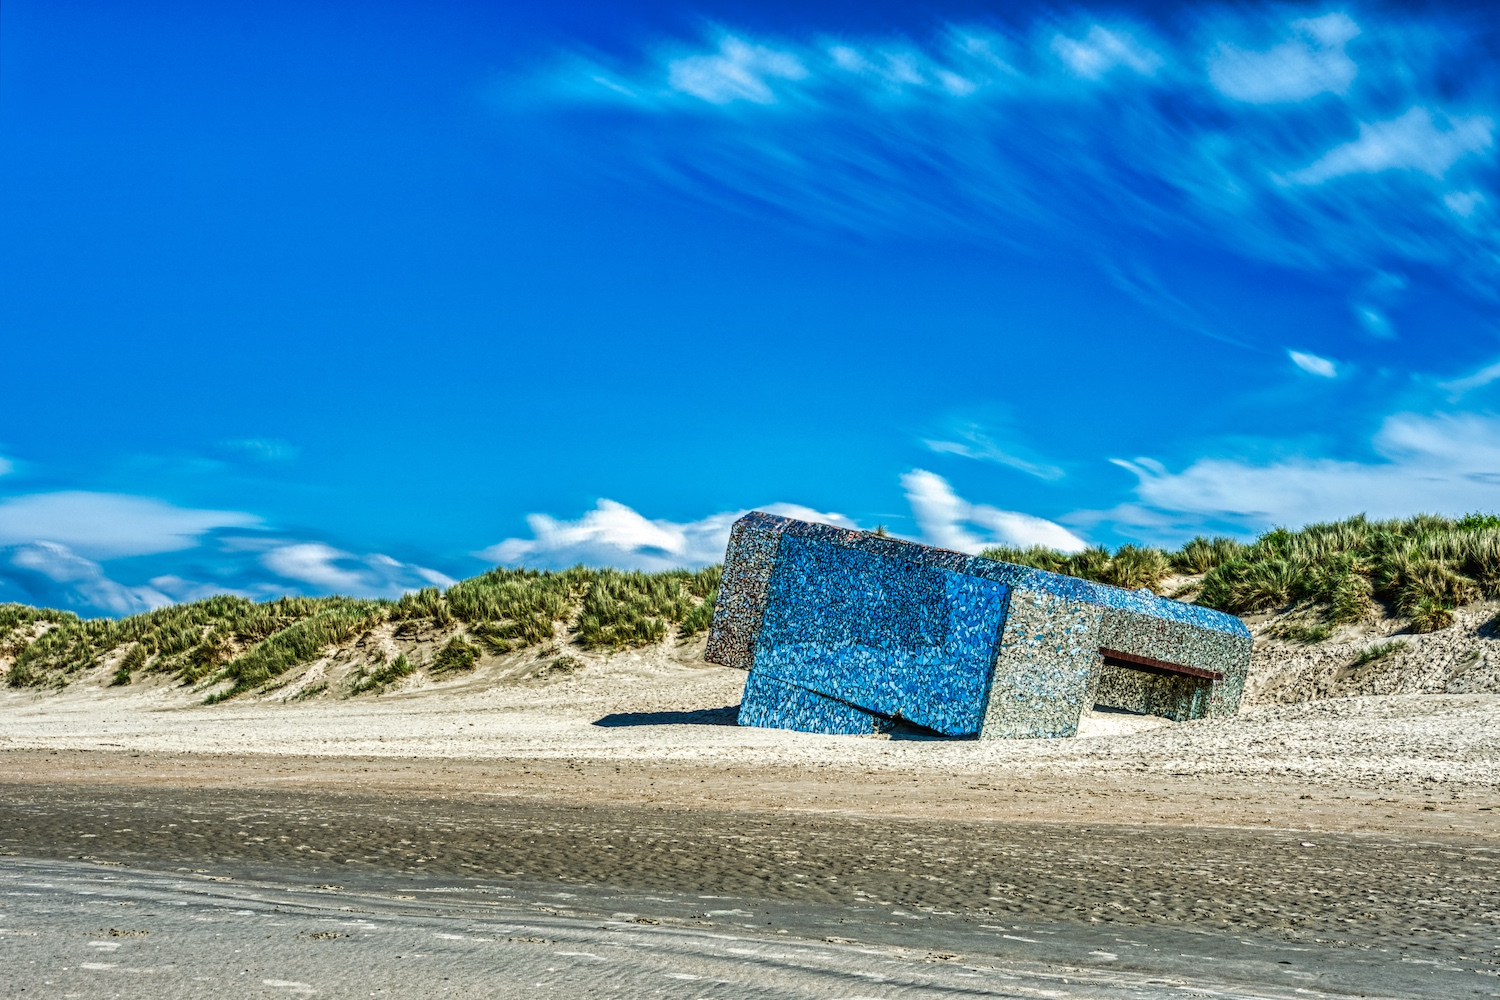 Mirrored bunker at the beach of Dunkerque